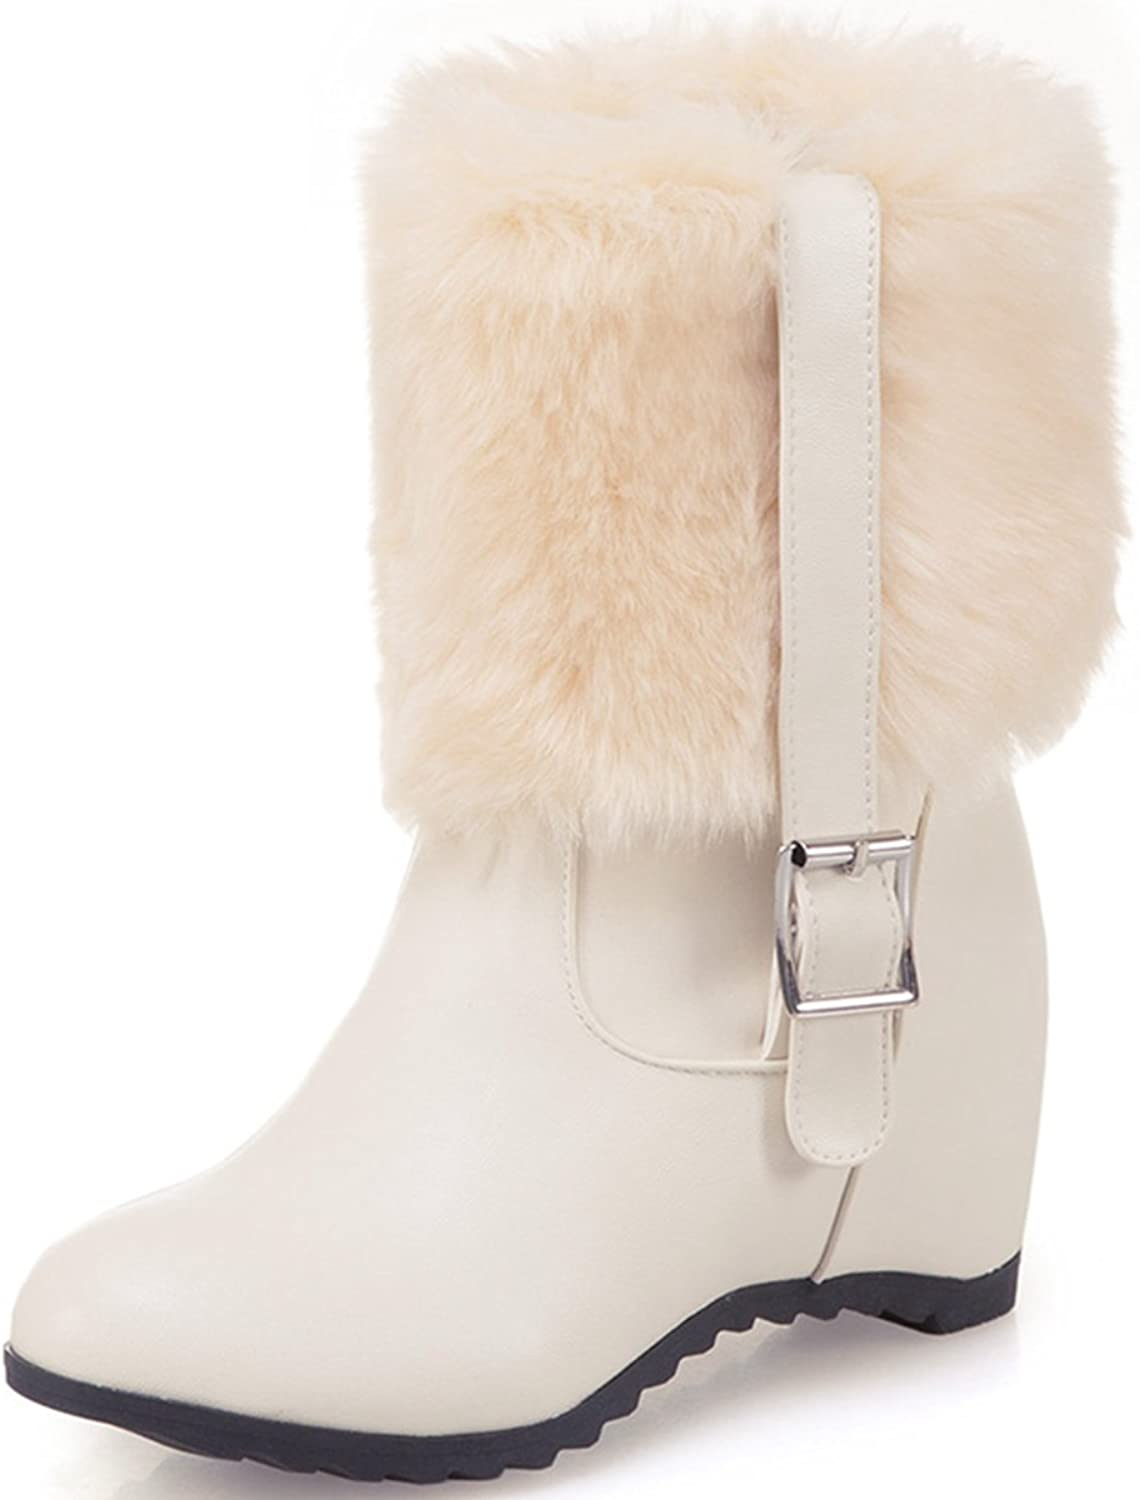 DoraTasia Women's Buckle Pointed Toe Faux Fur Flat Ankle Boots